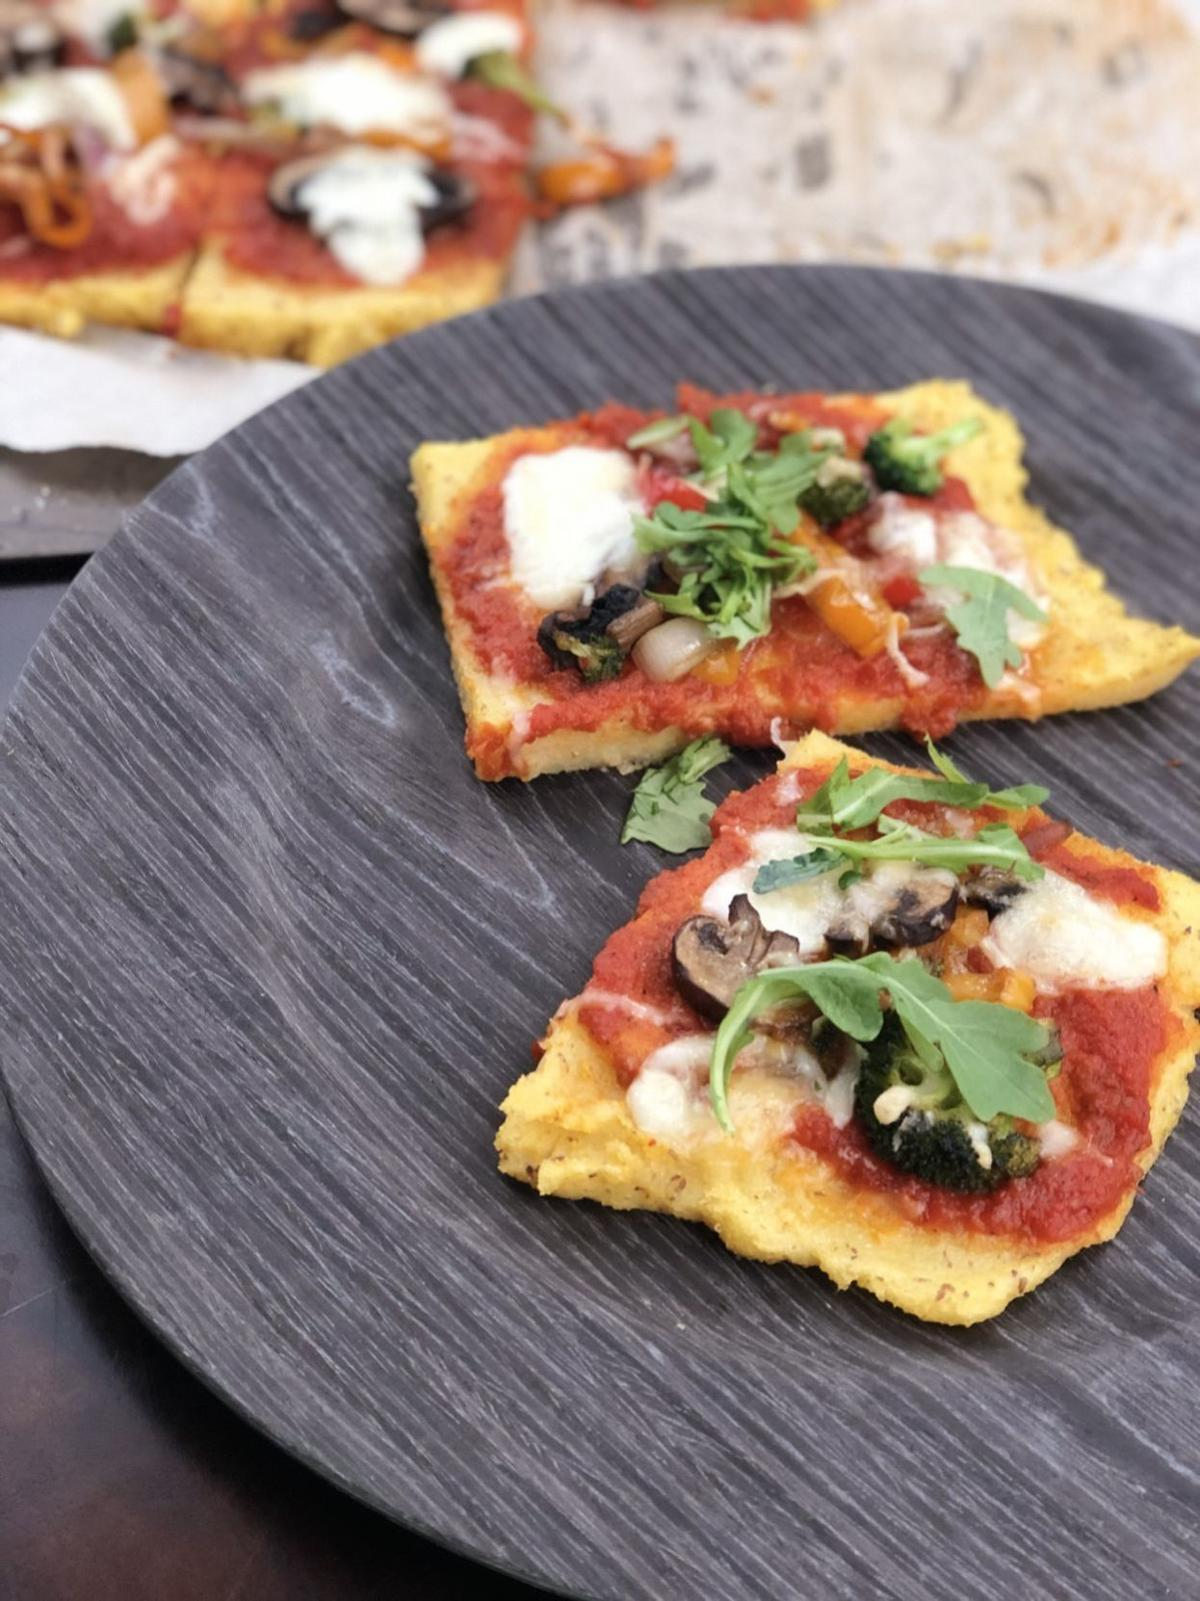 Polenta Pizza with Peppers and Arugula